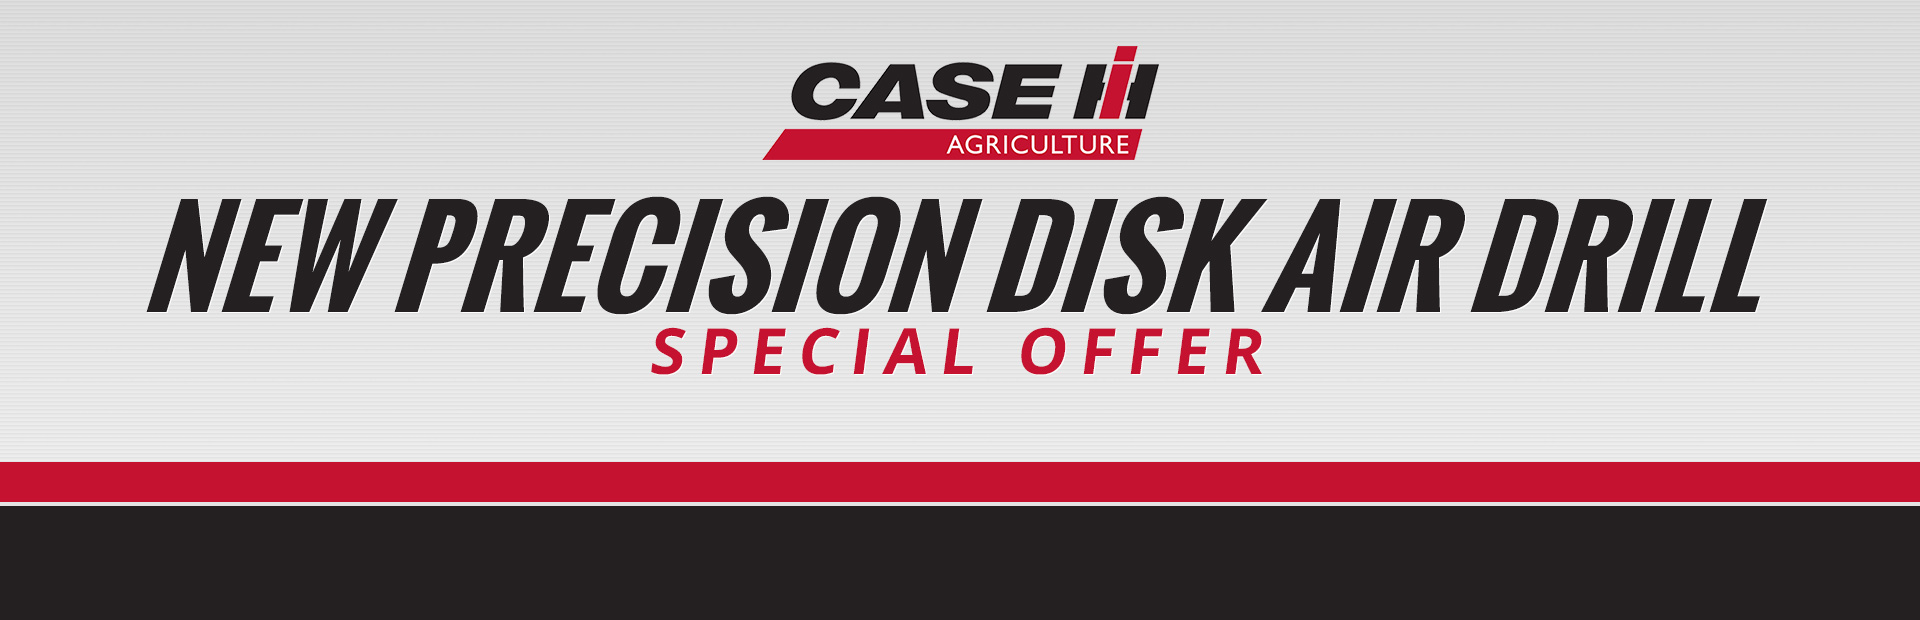 Case IH: New Precision Disk Air Drill Special Offer